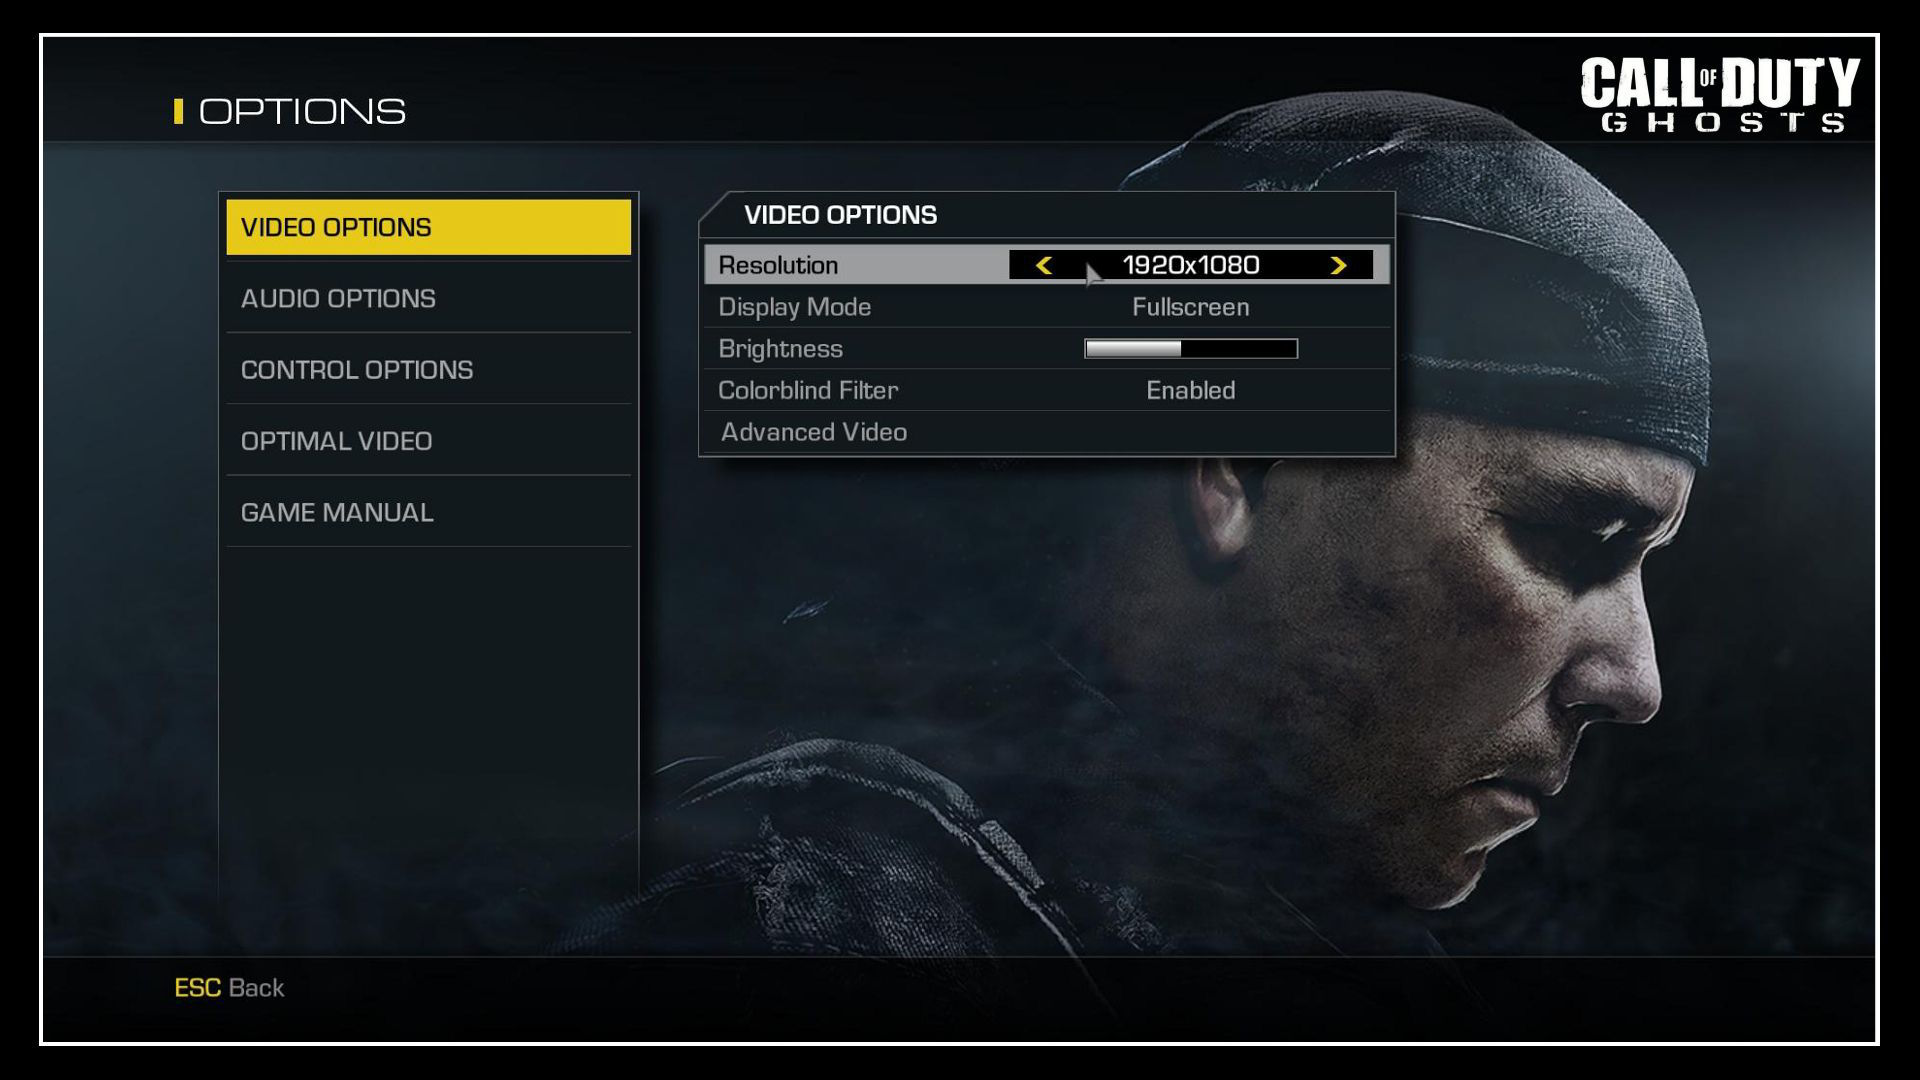 Call of Duty Ghosts Video Options 1920x1080 Sorunu